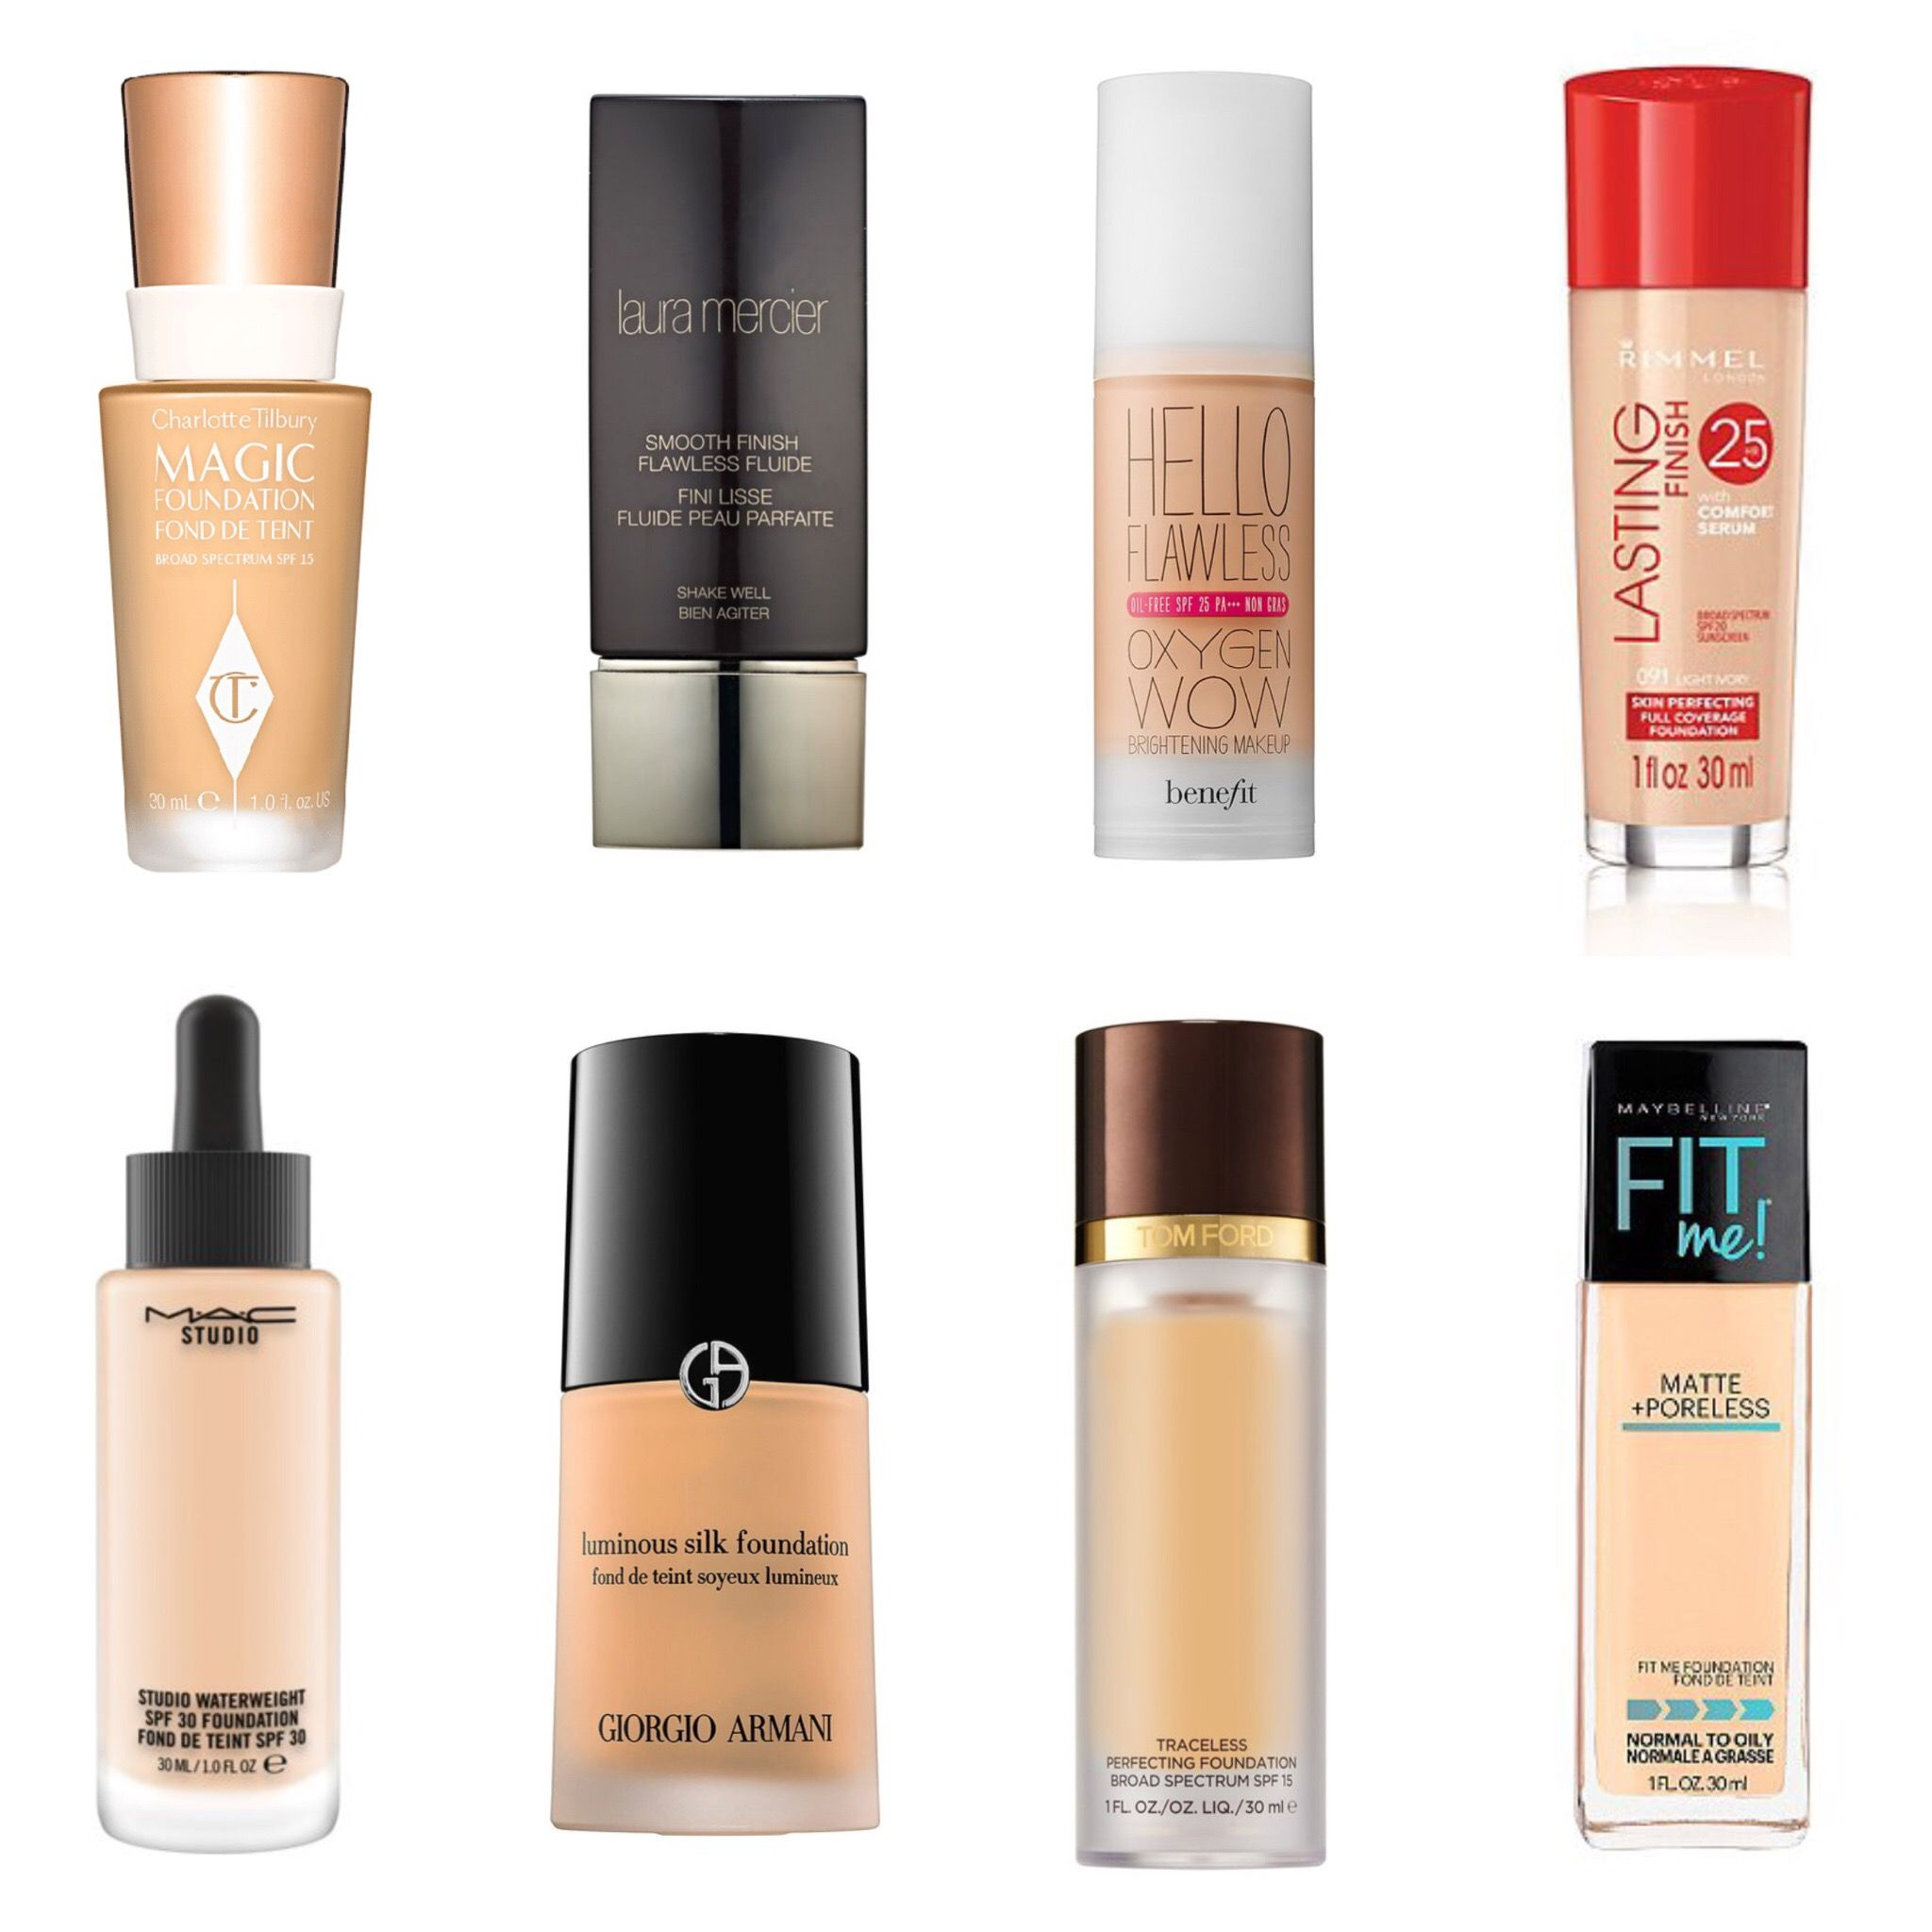 Glowing illuminating foundations No foundation makeup